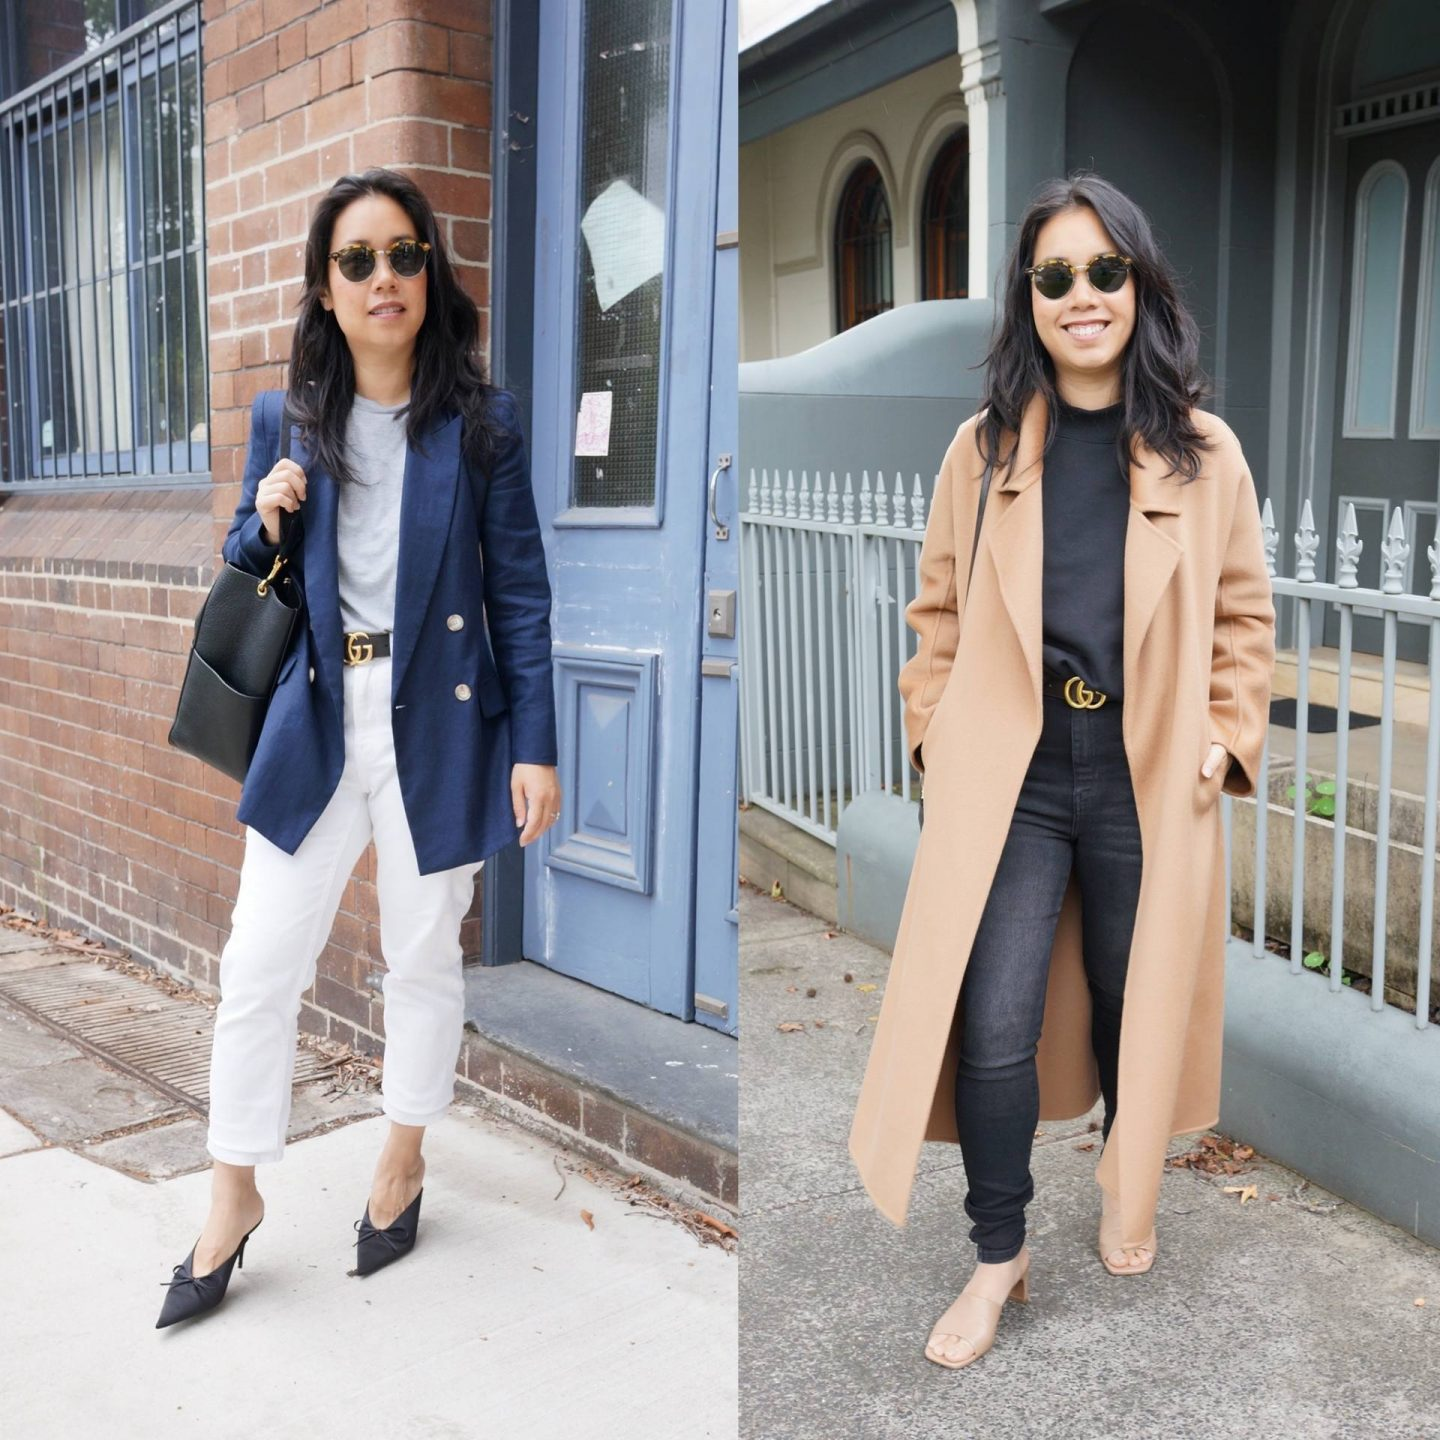 petite asian woman wearing gucci belt in blog post about gucci and loewe belt comparison